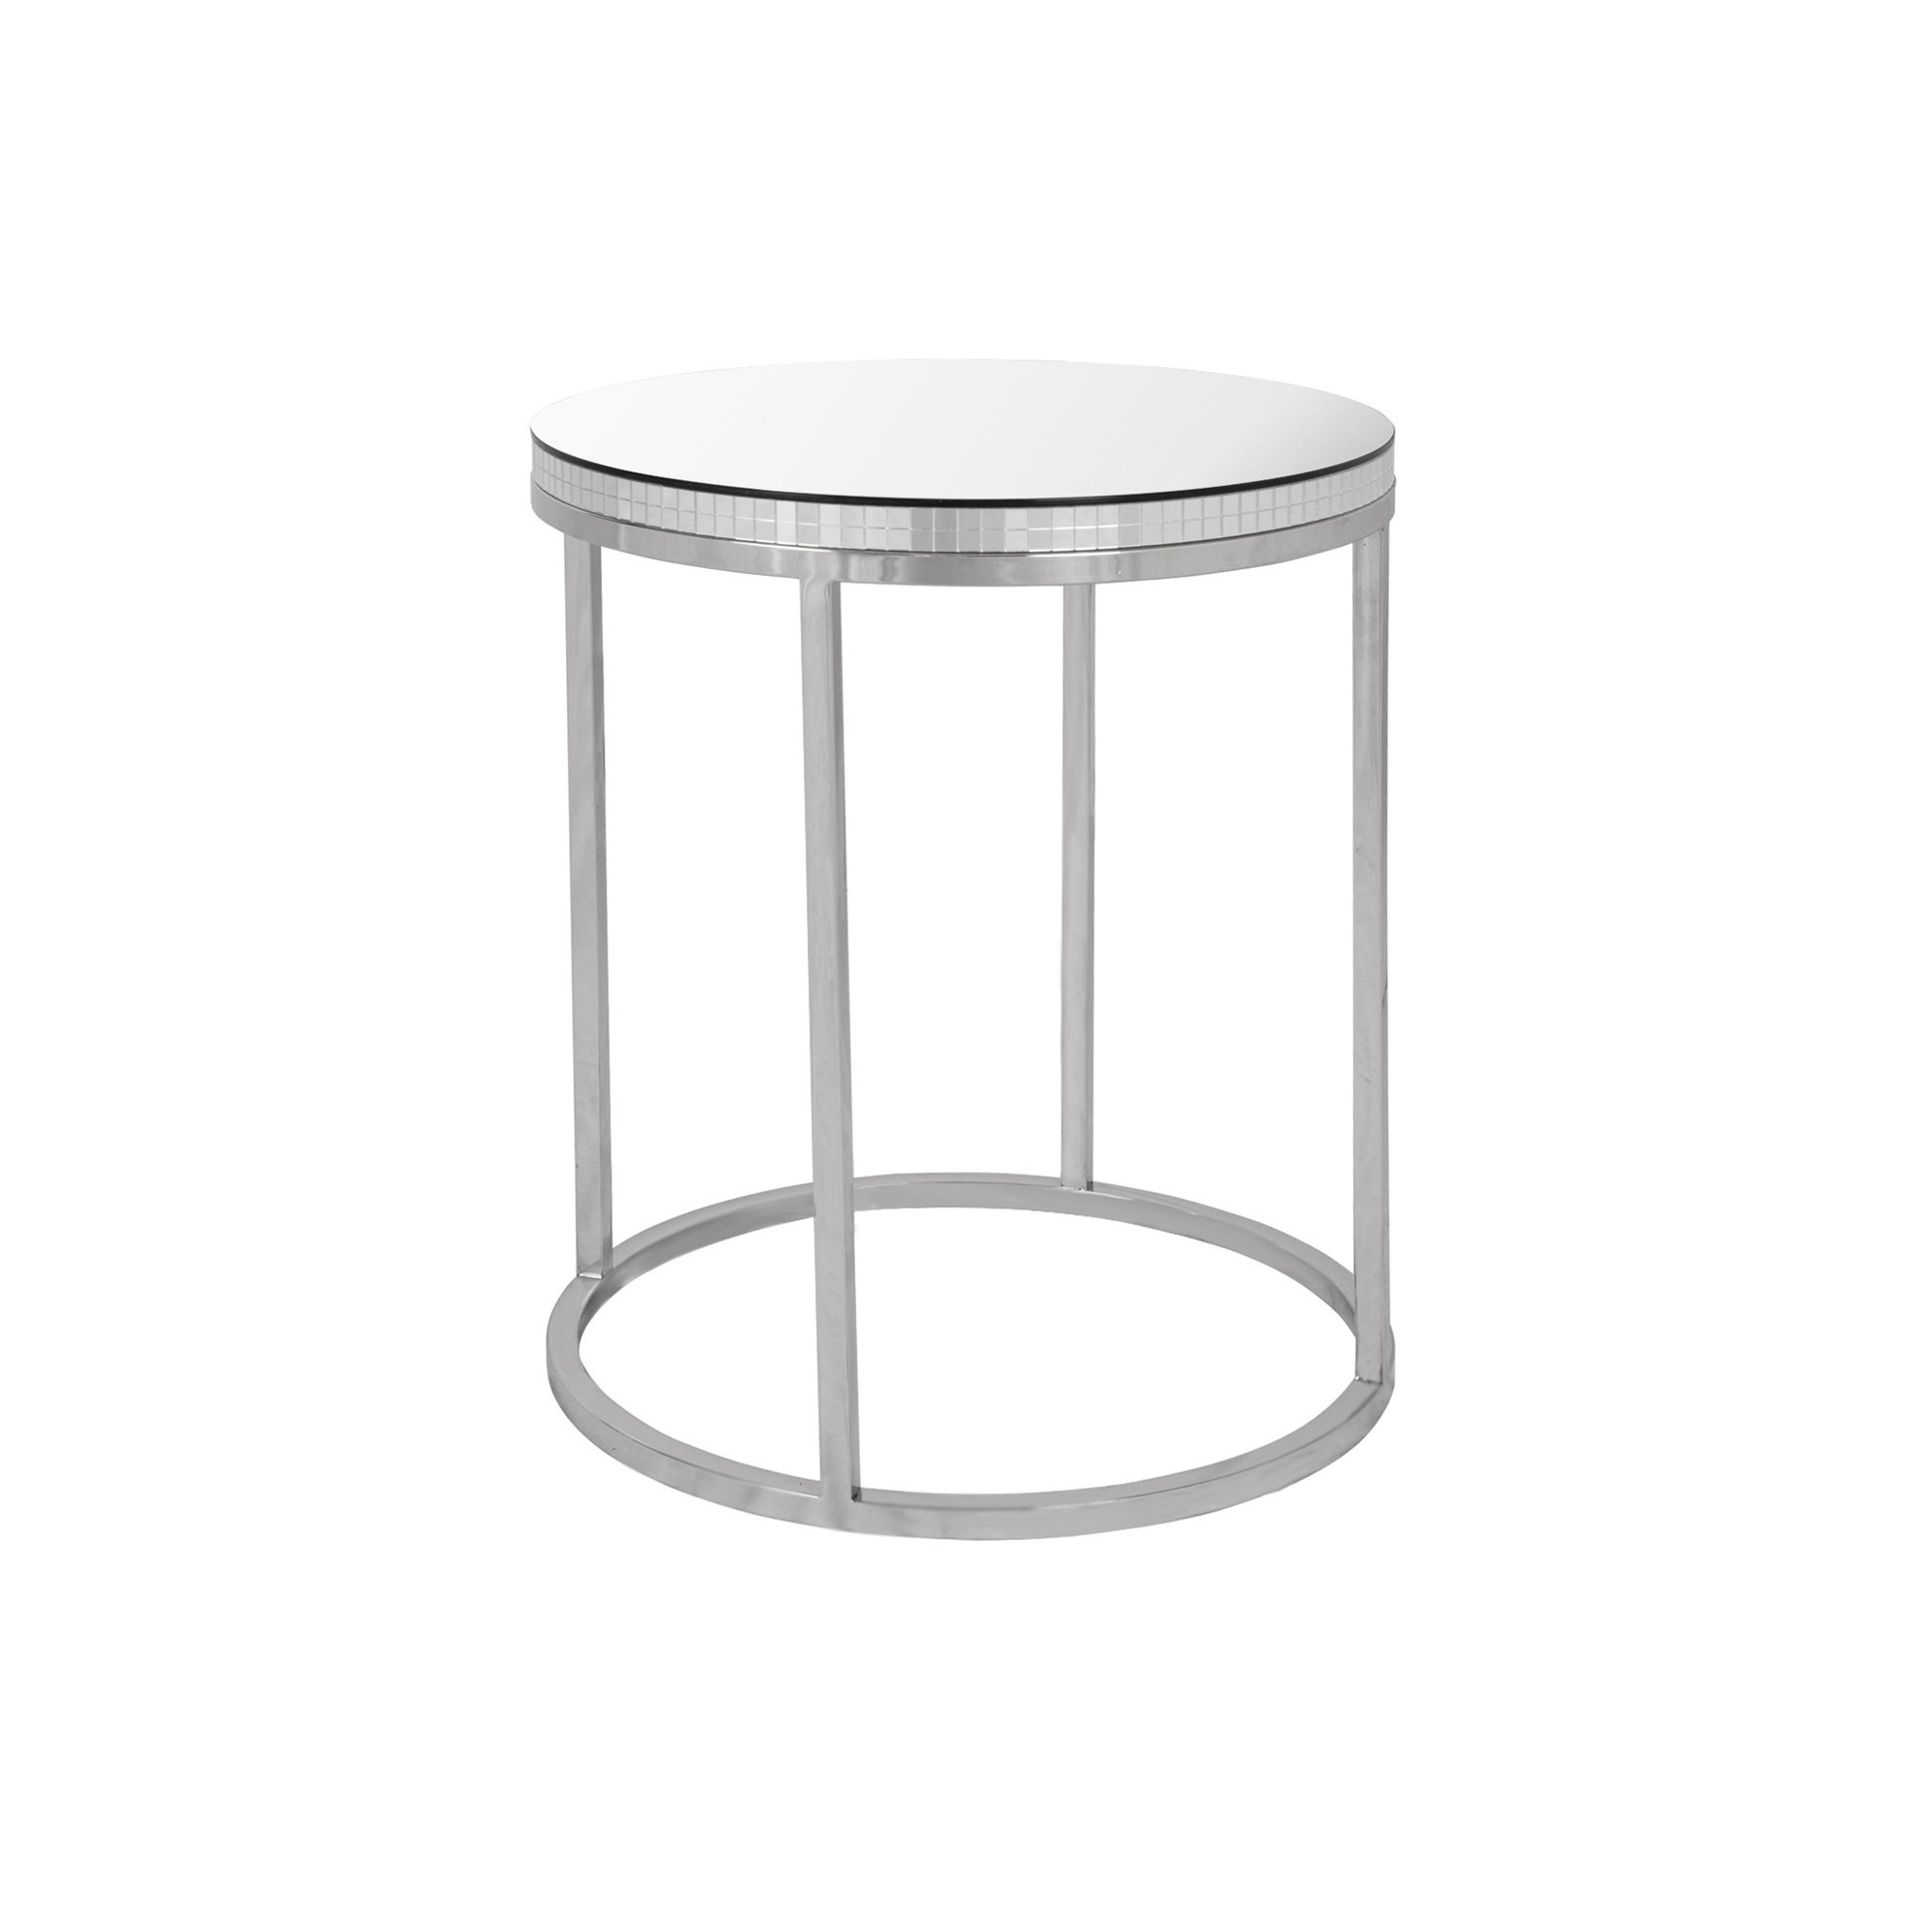 acrylic accent table free shipping today all glass side small oak console with drawers hardwood door threshold outdoor umbrella and stand solid wood half moon pottery barn sconces